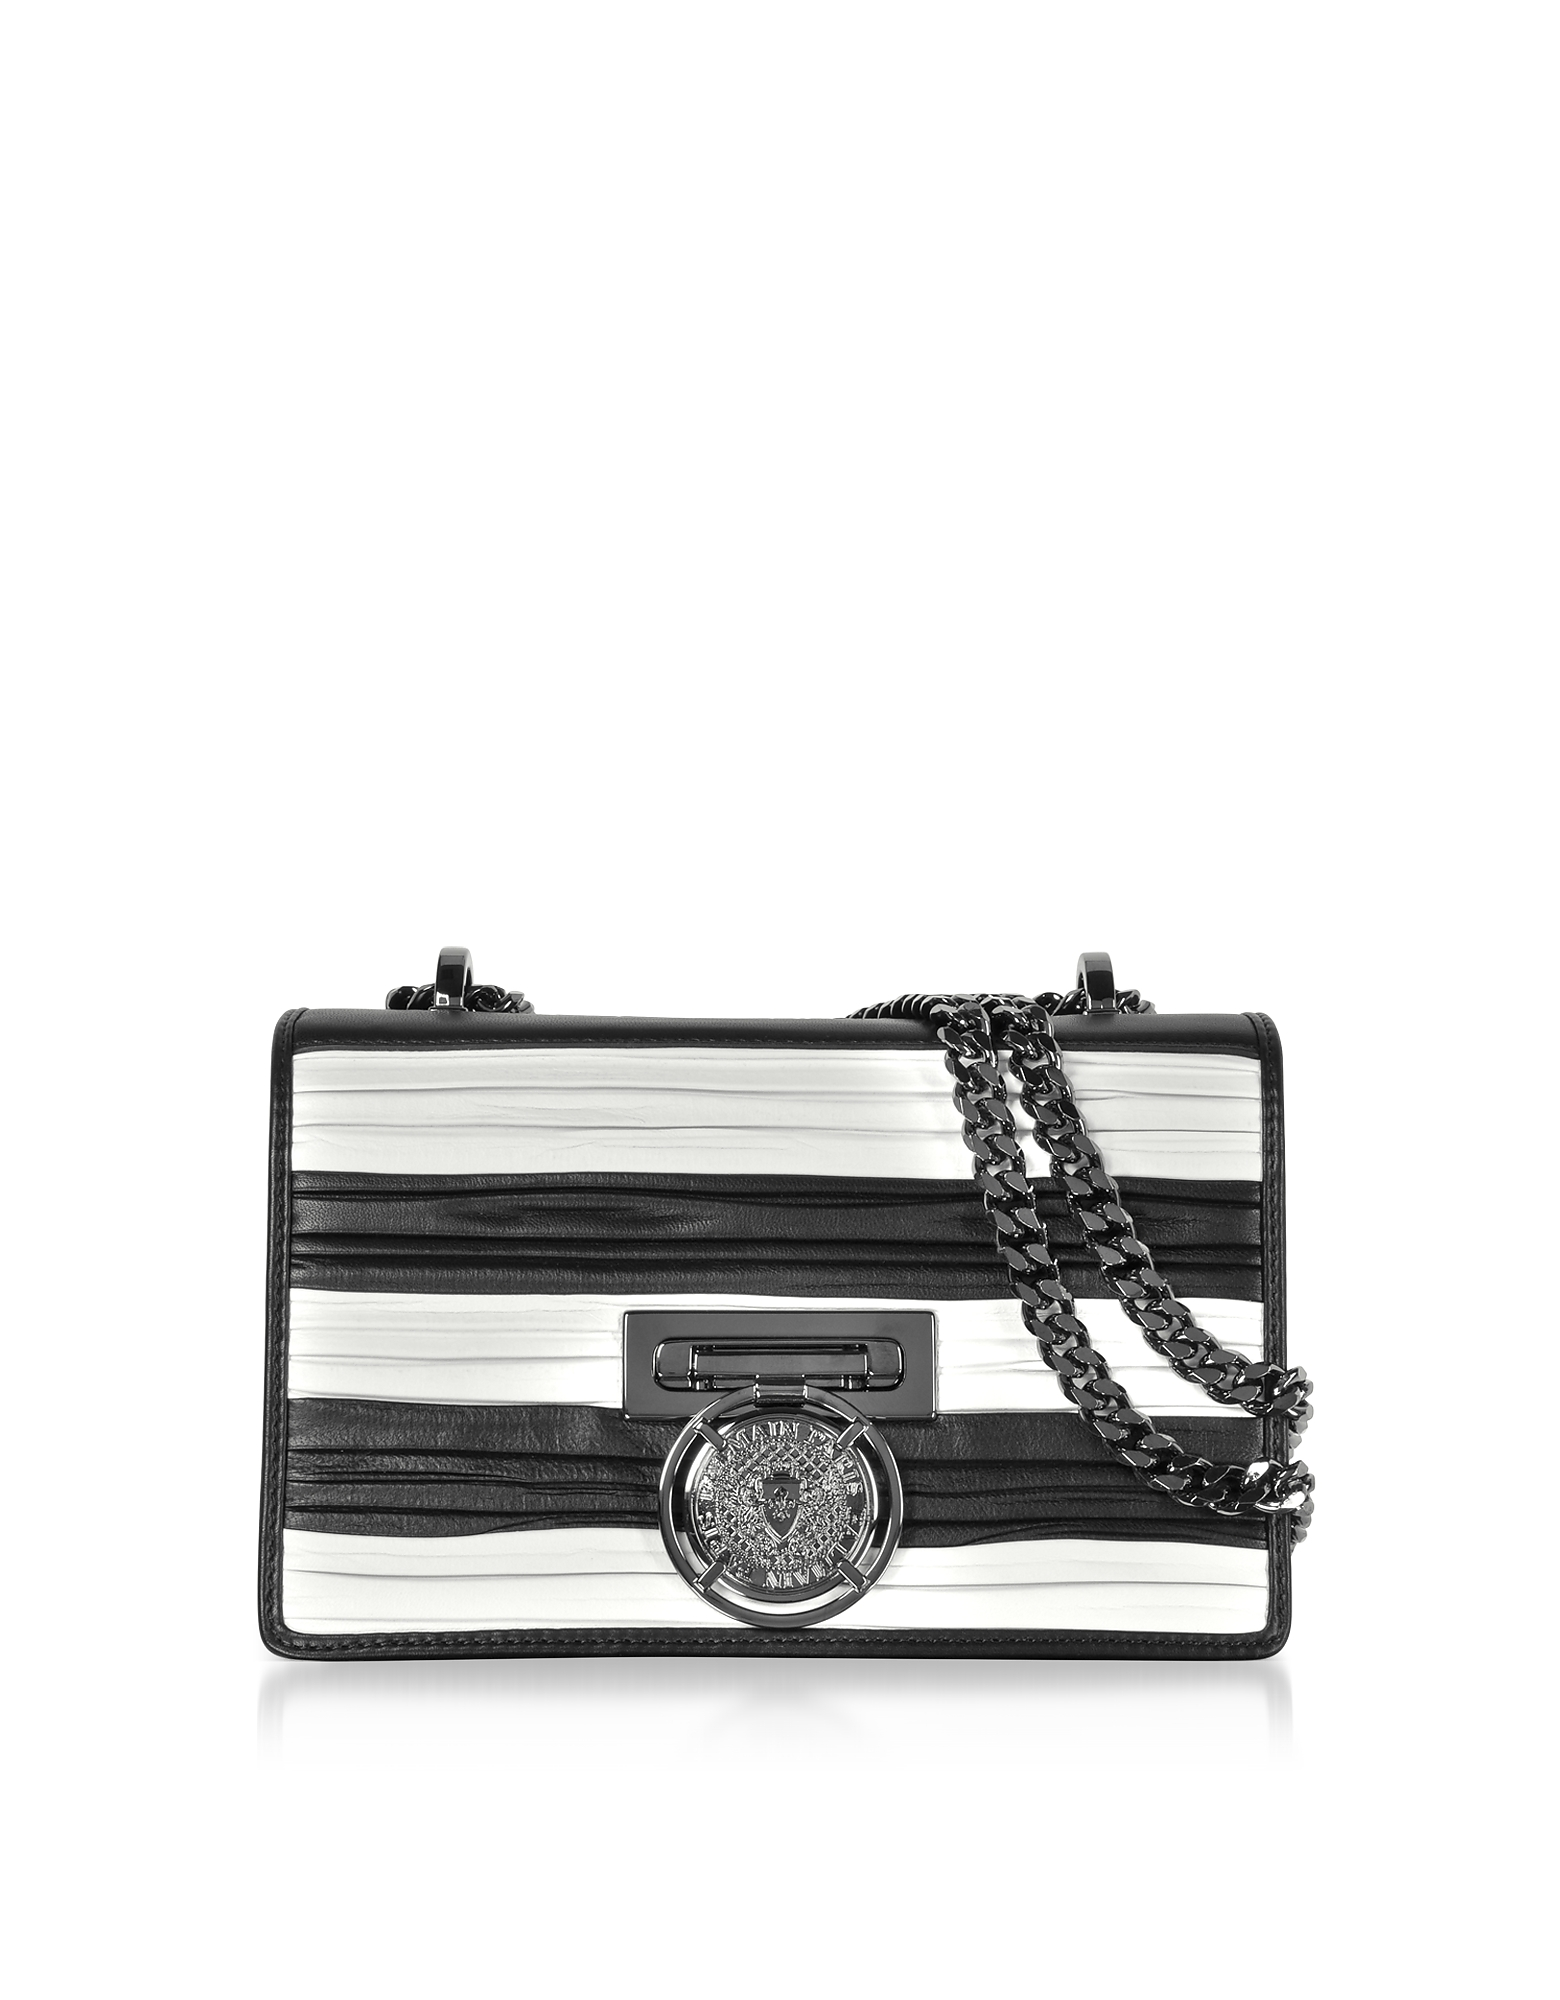 Black/White Striped and Pleated Leather BBox 20 Flap Shoulder Bag